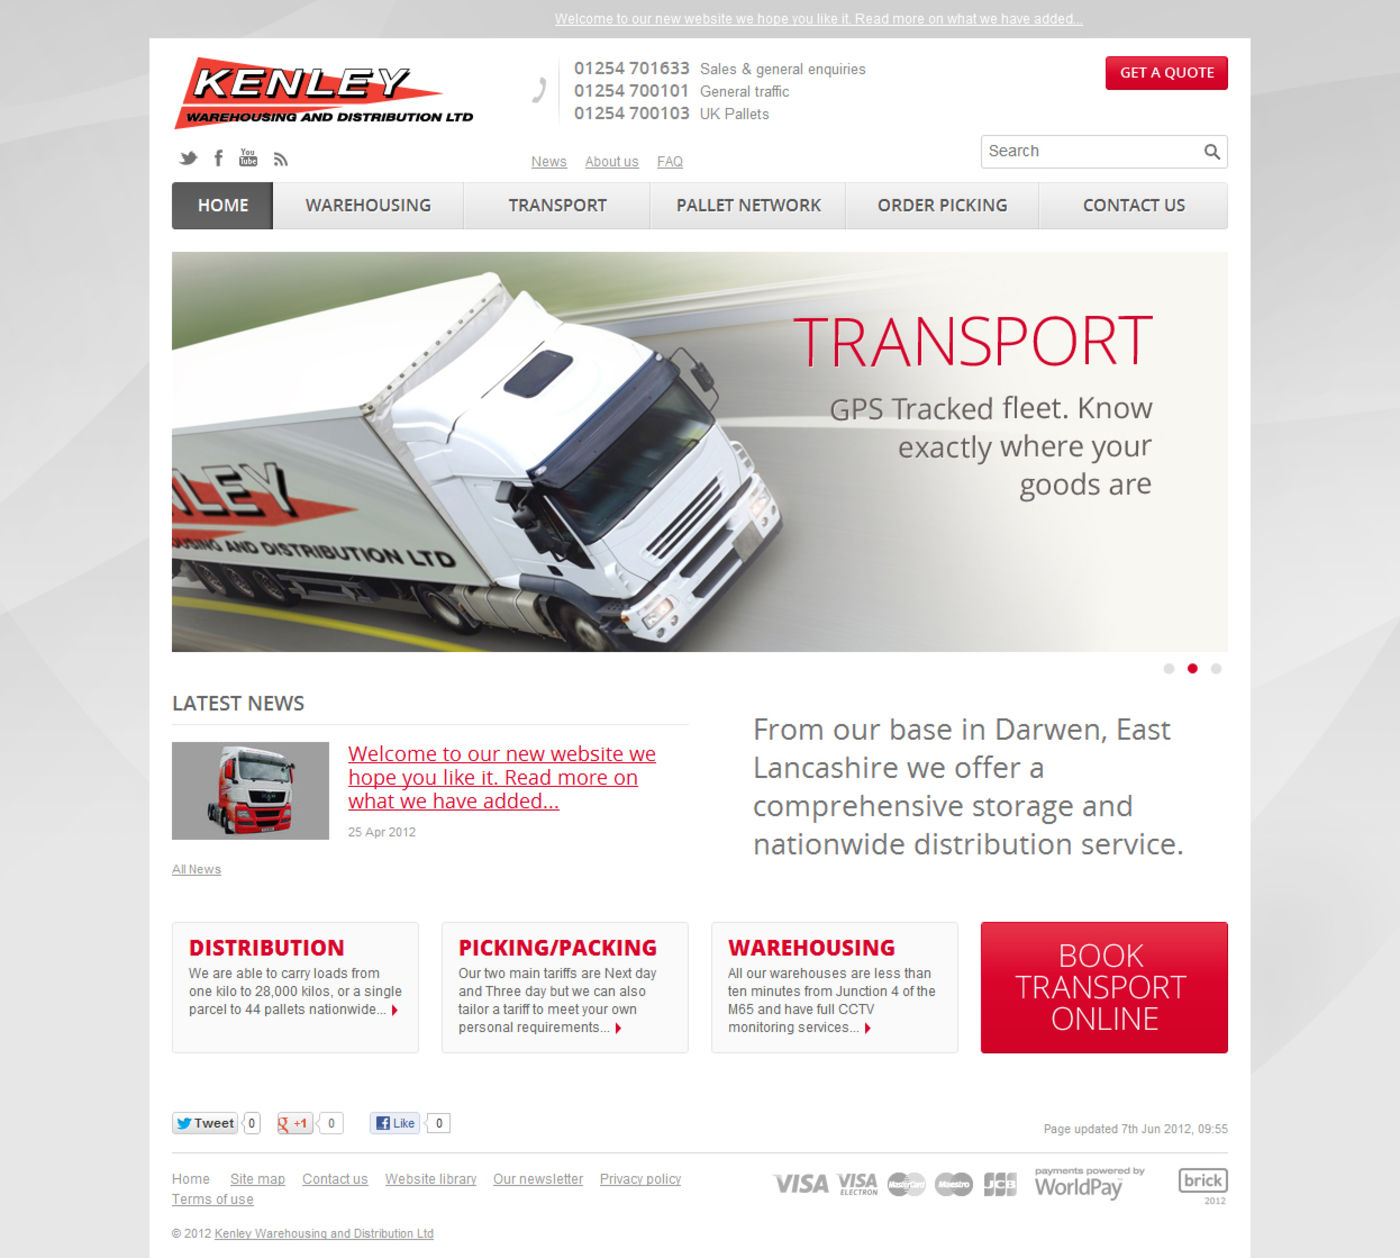 Kenley Warehousing and Distribution Ltd. Homepage